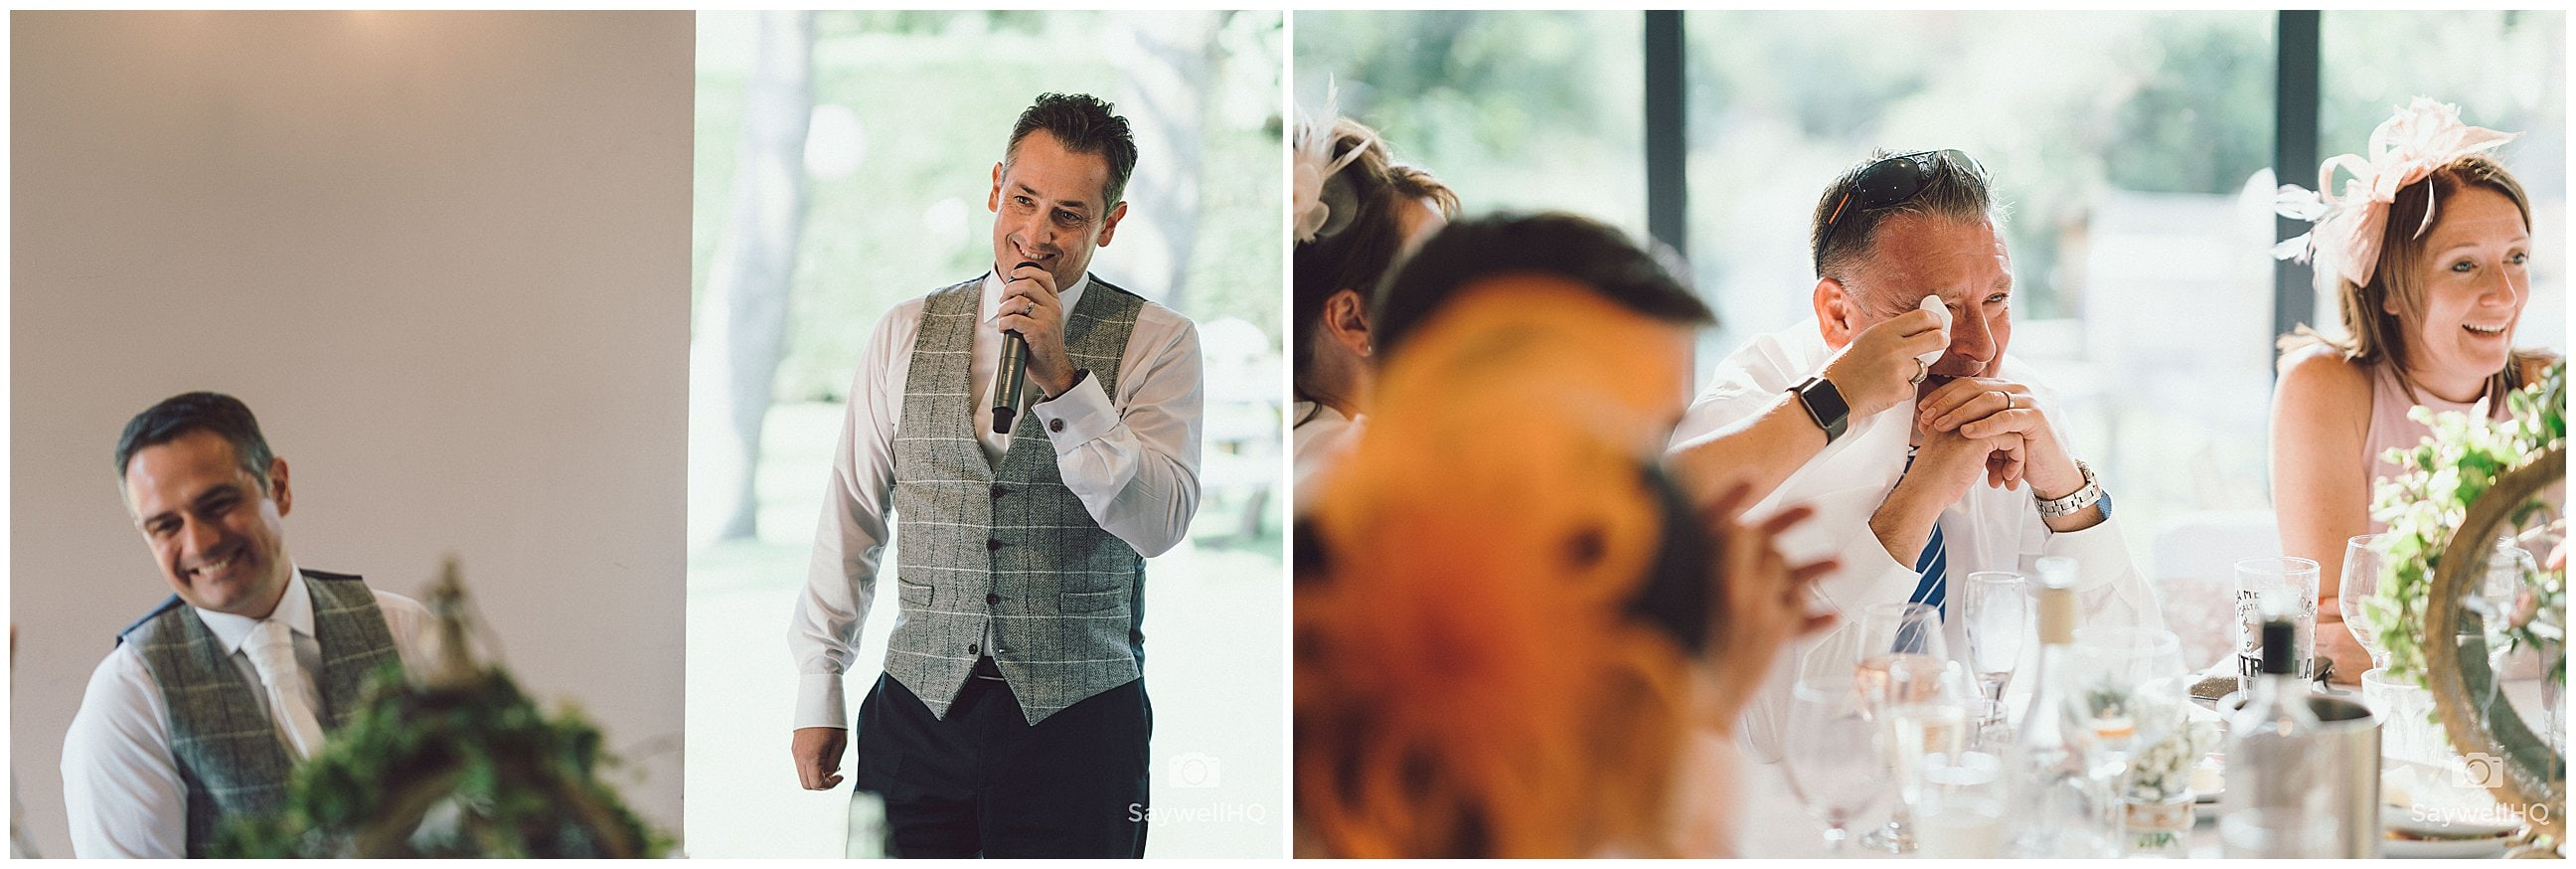 The Chequers Inn Woolsthorpe Wedding Photography - guest reactions to the grooms emotional wedding speech